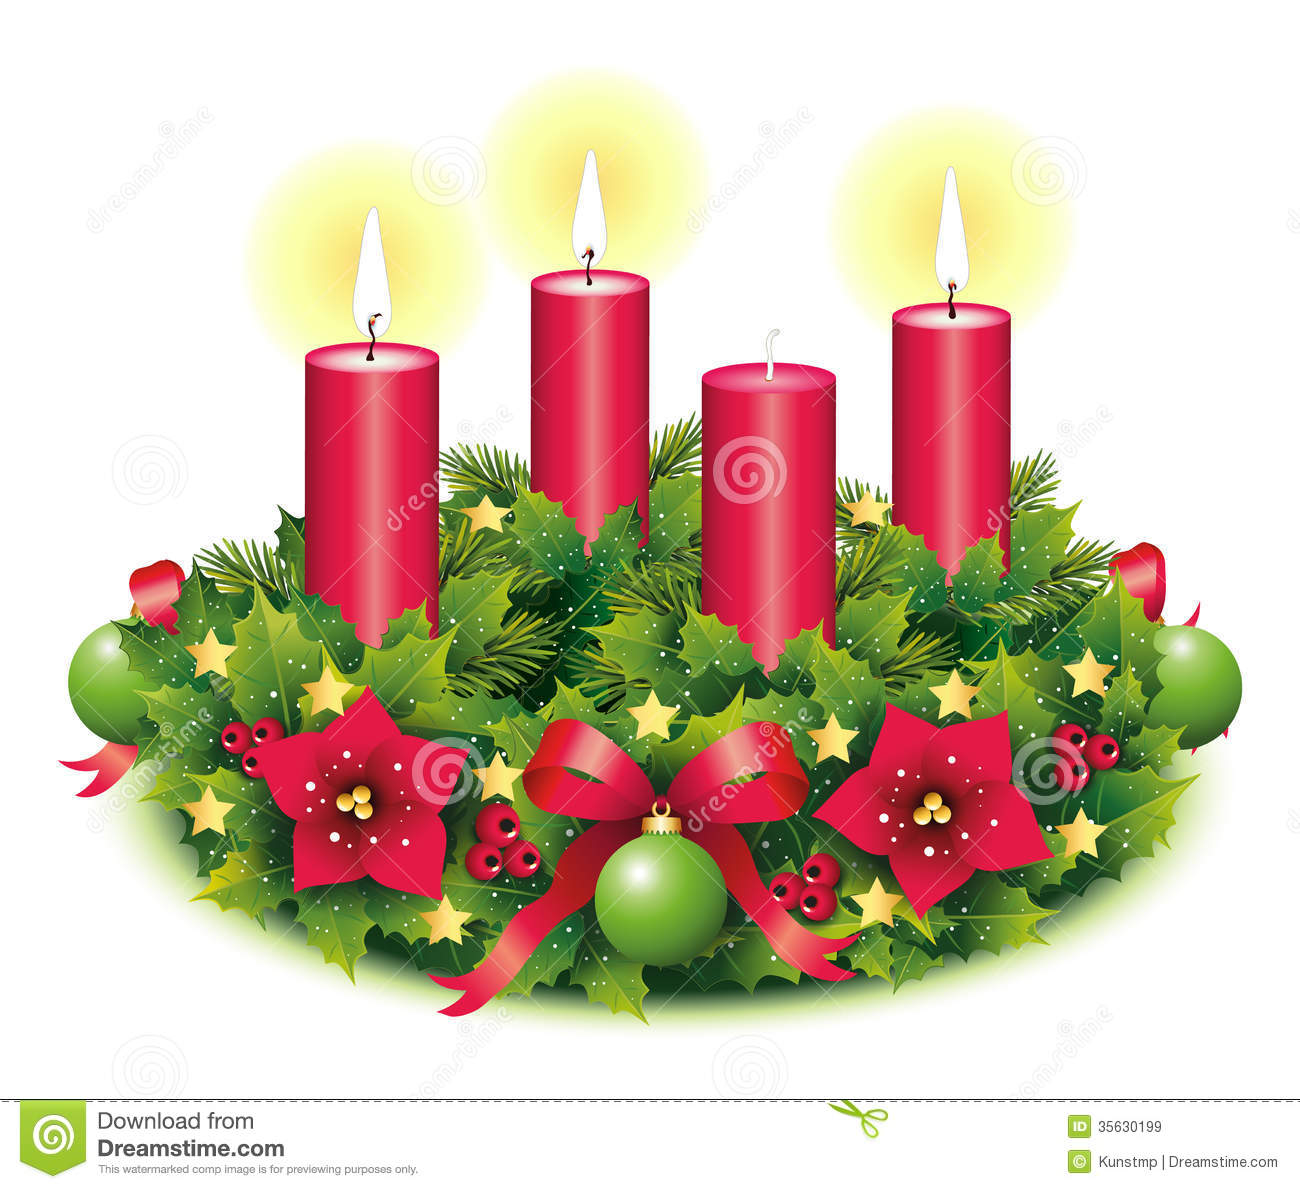 Advent Advent Wreath Second Advent 3 Third Burning Candle Christmas